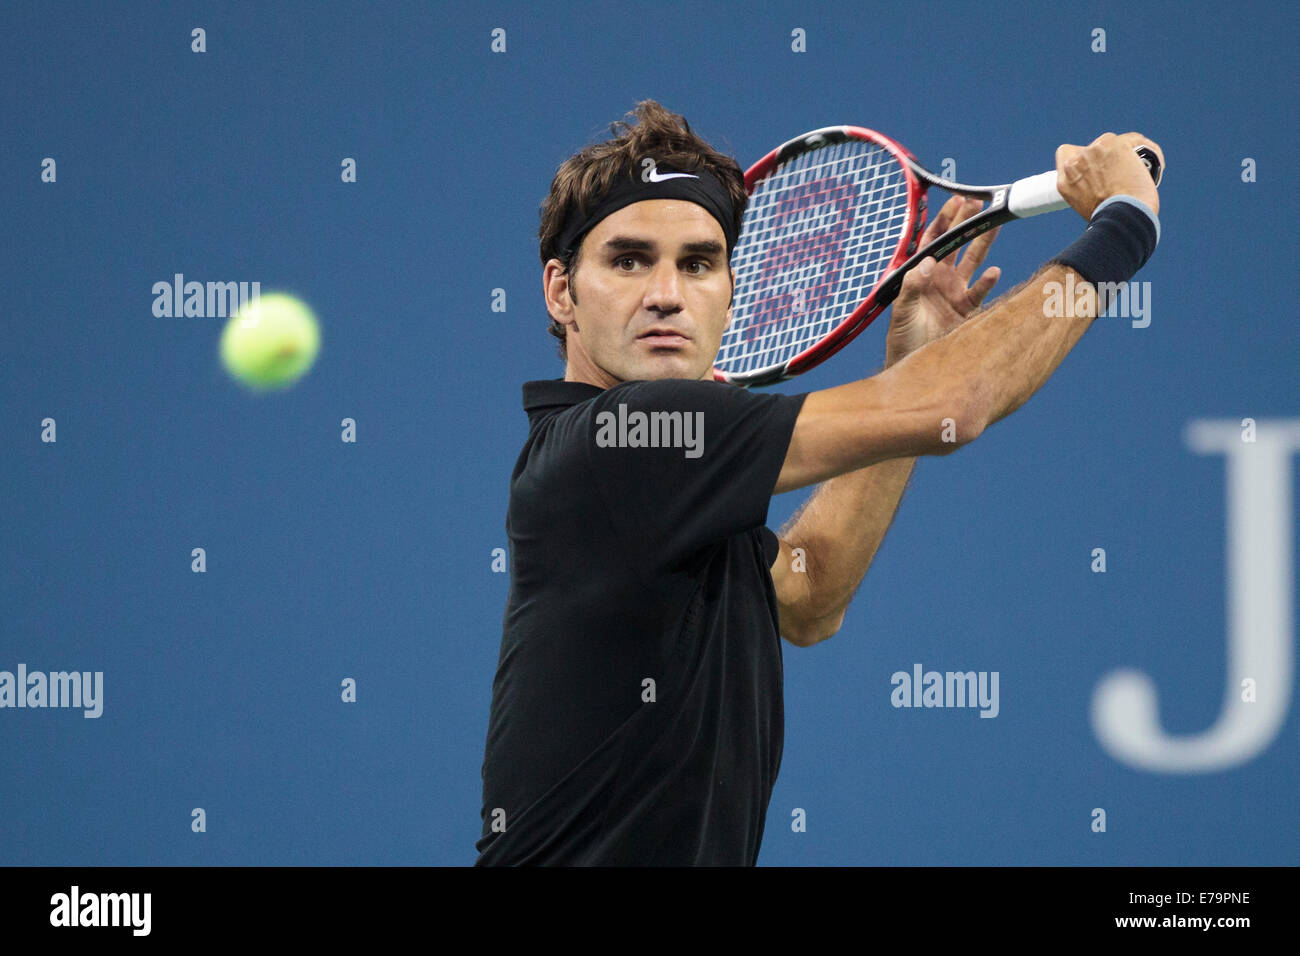 Flushing Meadows, NY, USA. 29th Aug, 2014. Roger Federer (SUI) in second round action at the US Open Tennis Championships. - Stock Image